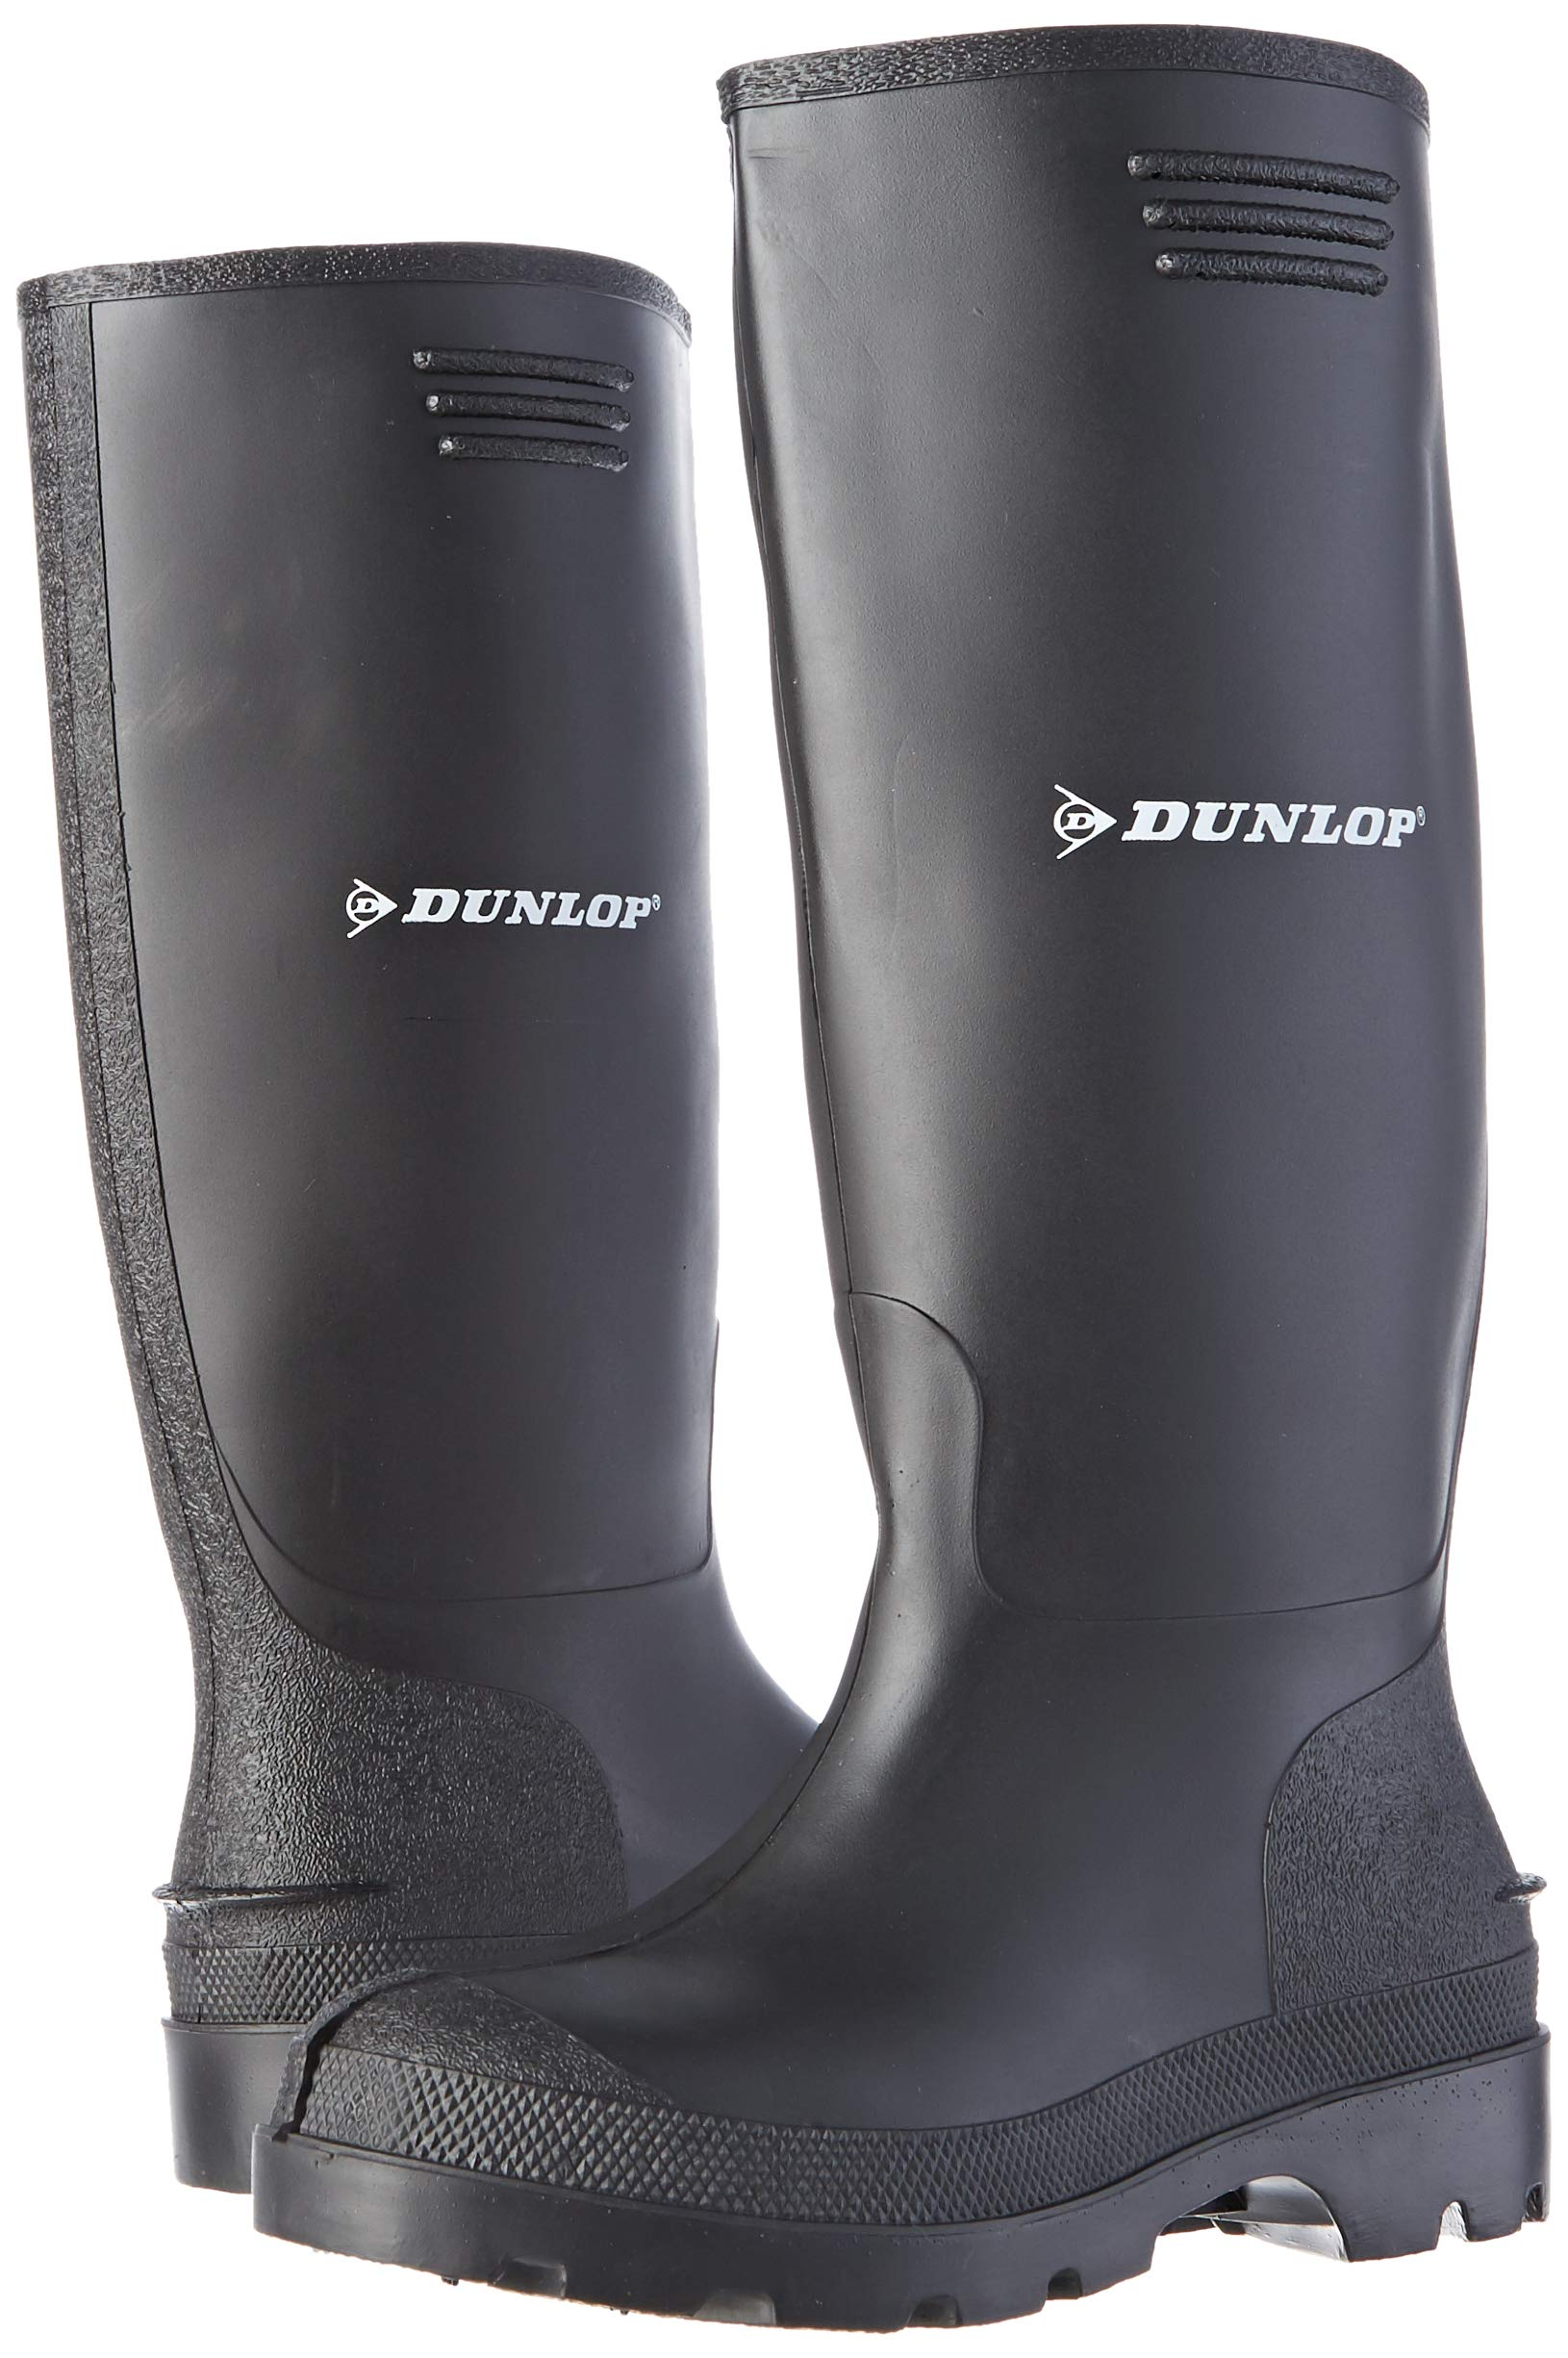 Dunlop Pricemastor PVC Welly / Mens Boots (10 UK) (Black) 5